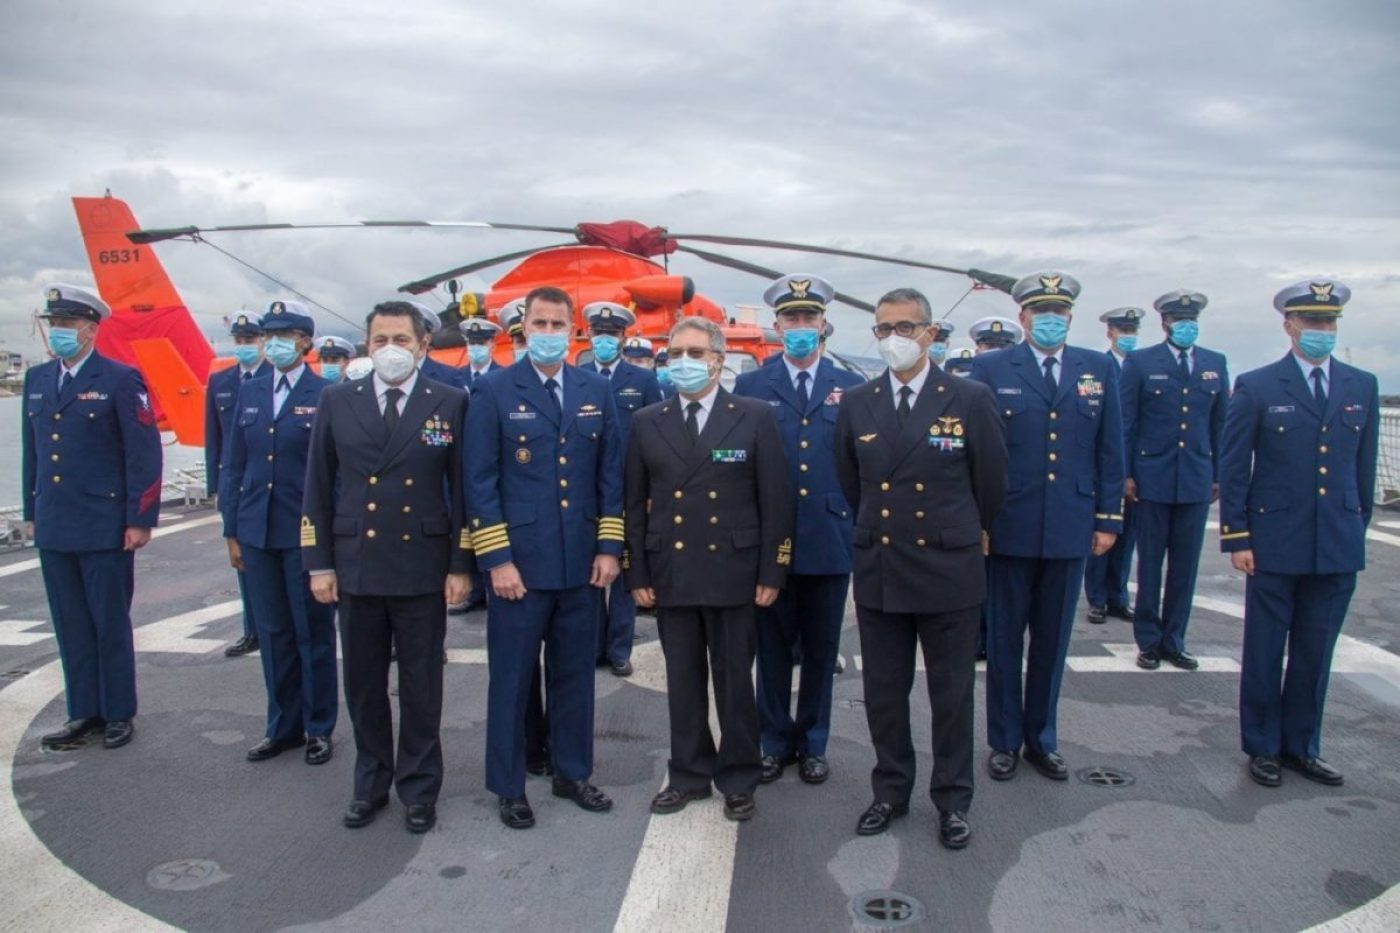 Members from the Italian Coast Guard and USCGC Hamilton (WMSL 753) pose for a photo in front of a U.S. Coast Guard MH-65 Dolphin helicopter aboard Hamilton, April 23, 2021. U.S. Coast Guard Cutter Hamilton is on a routine deployment in the U.S. Sixth Fleet area of operations in support of U.S. national interests and security in Europe and Africa. (U.S. Coast Guard photo)